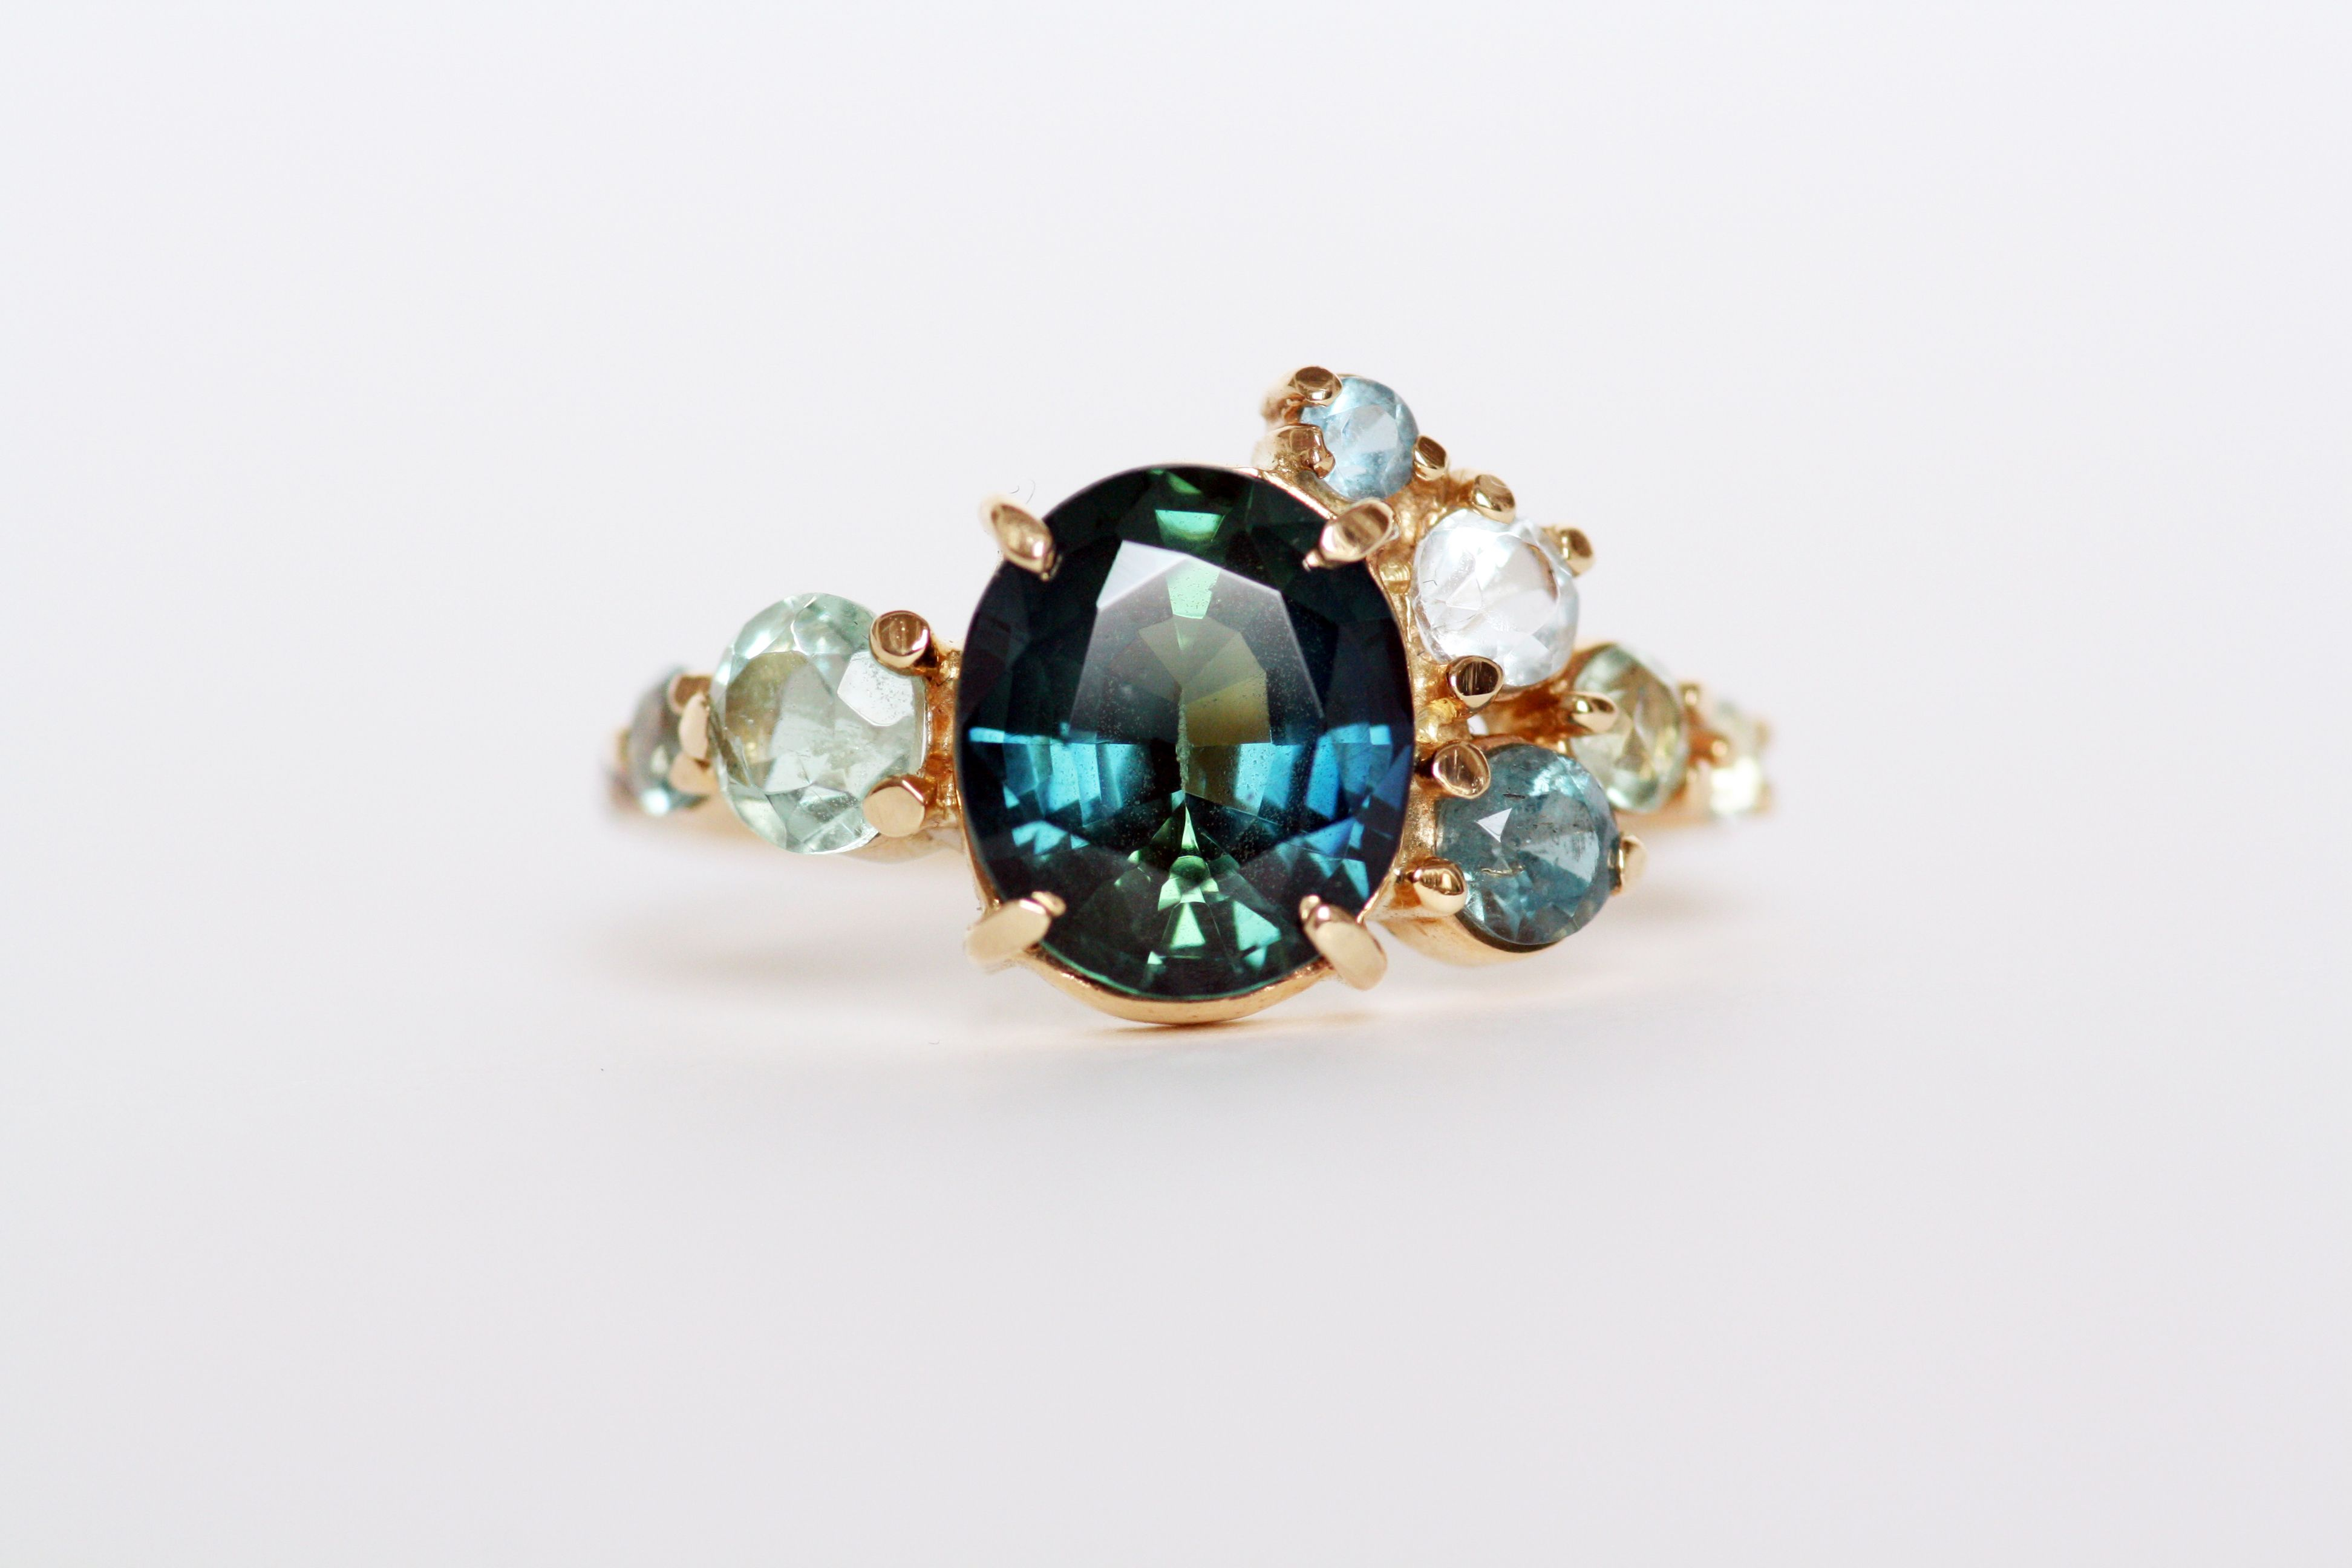 Arch cluster ring featuring a 3.00 ct. Australian blue green bicolor sapphire. Flanked by aquamarine. Set in 14K yellow gold.